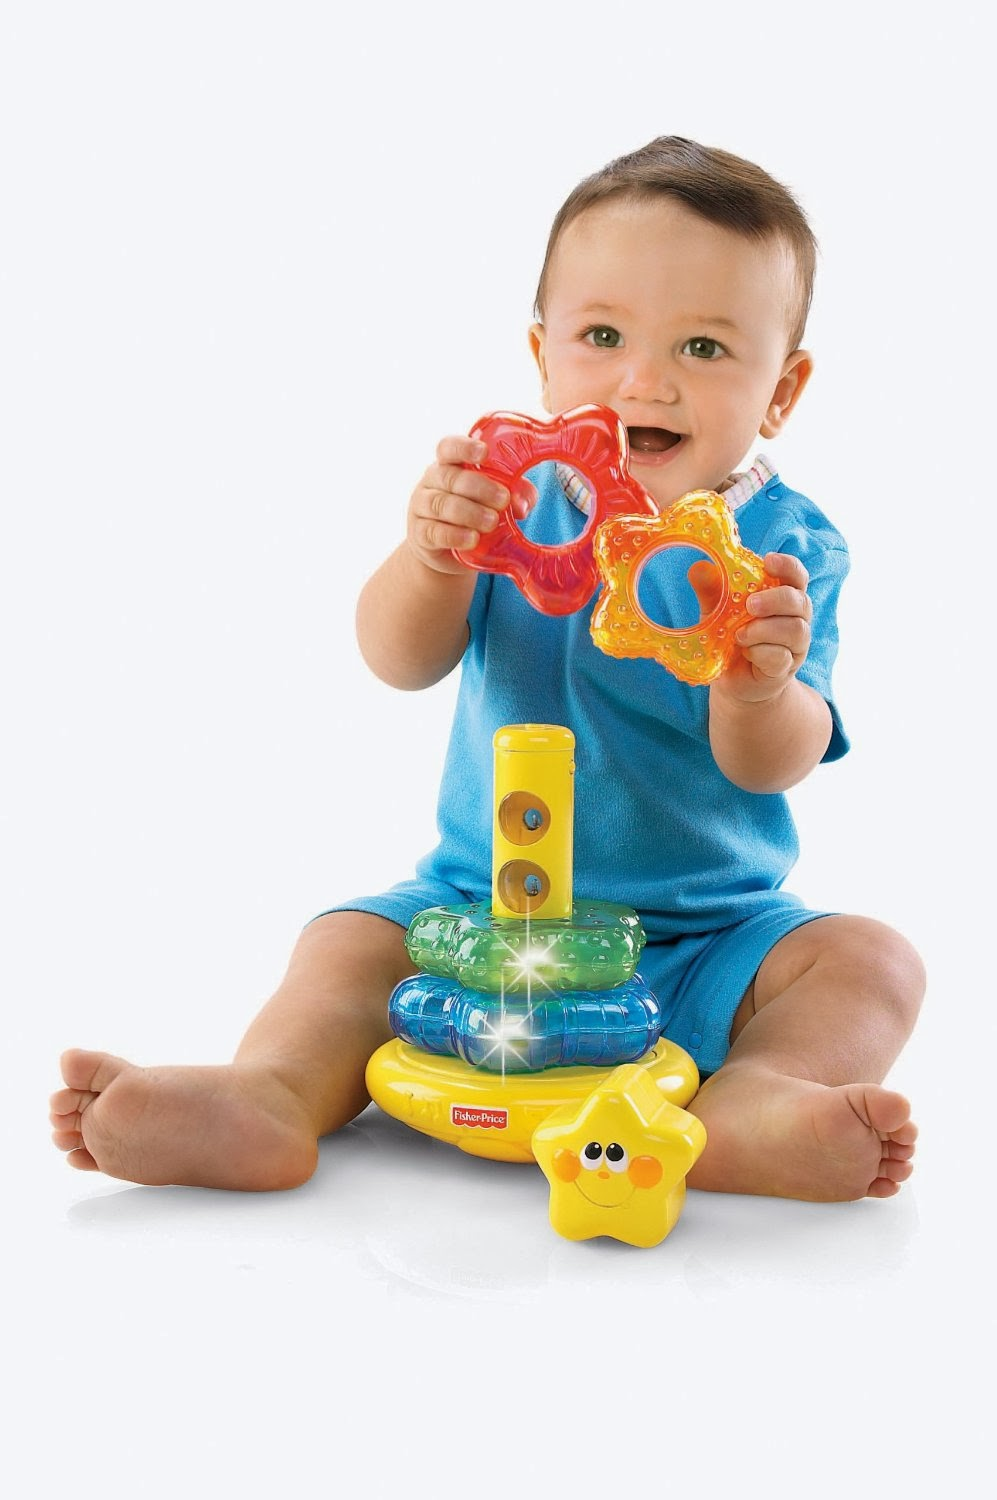 Best Toys For 12 Month Old : My baby best toys for your months old